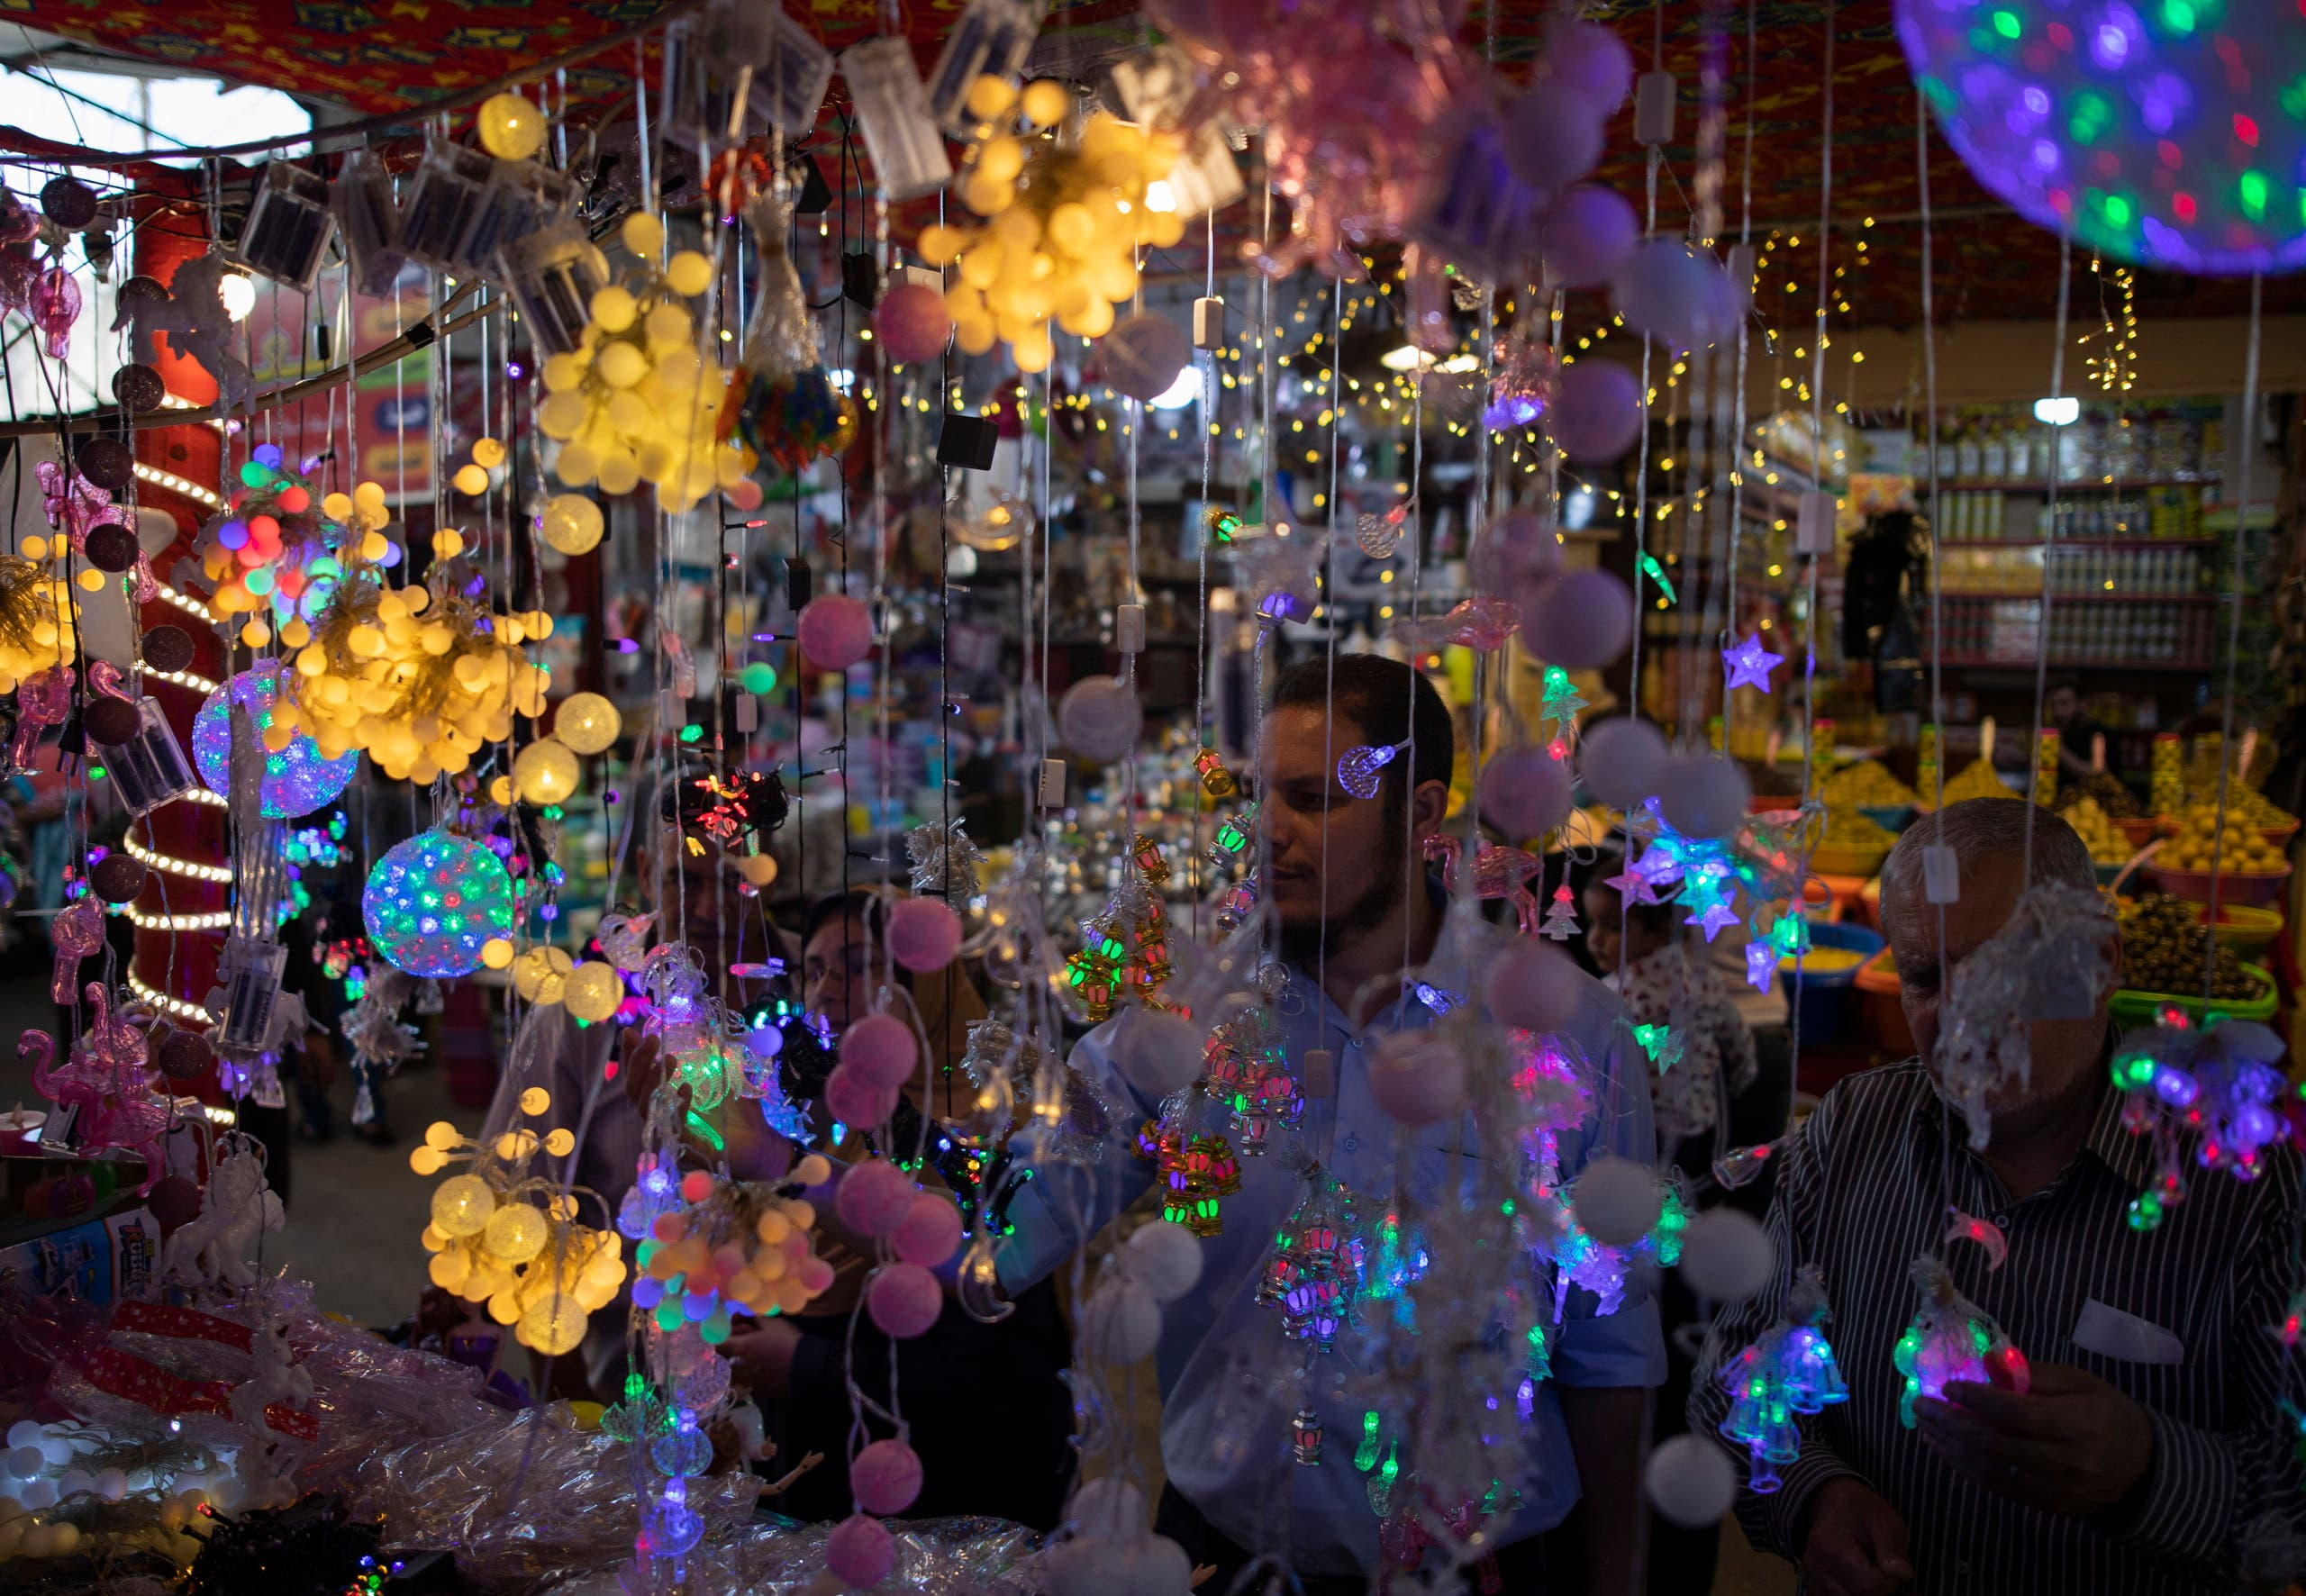 Palestinians buy festive lights in the Zawiya market ahead of the holy month of Ramadan, in Gaza City, on Wednesday, April 22, 2020. (AP)